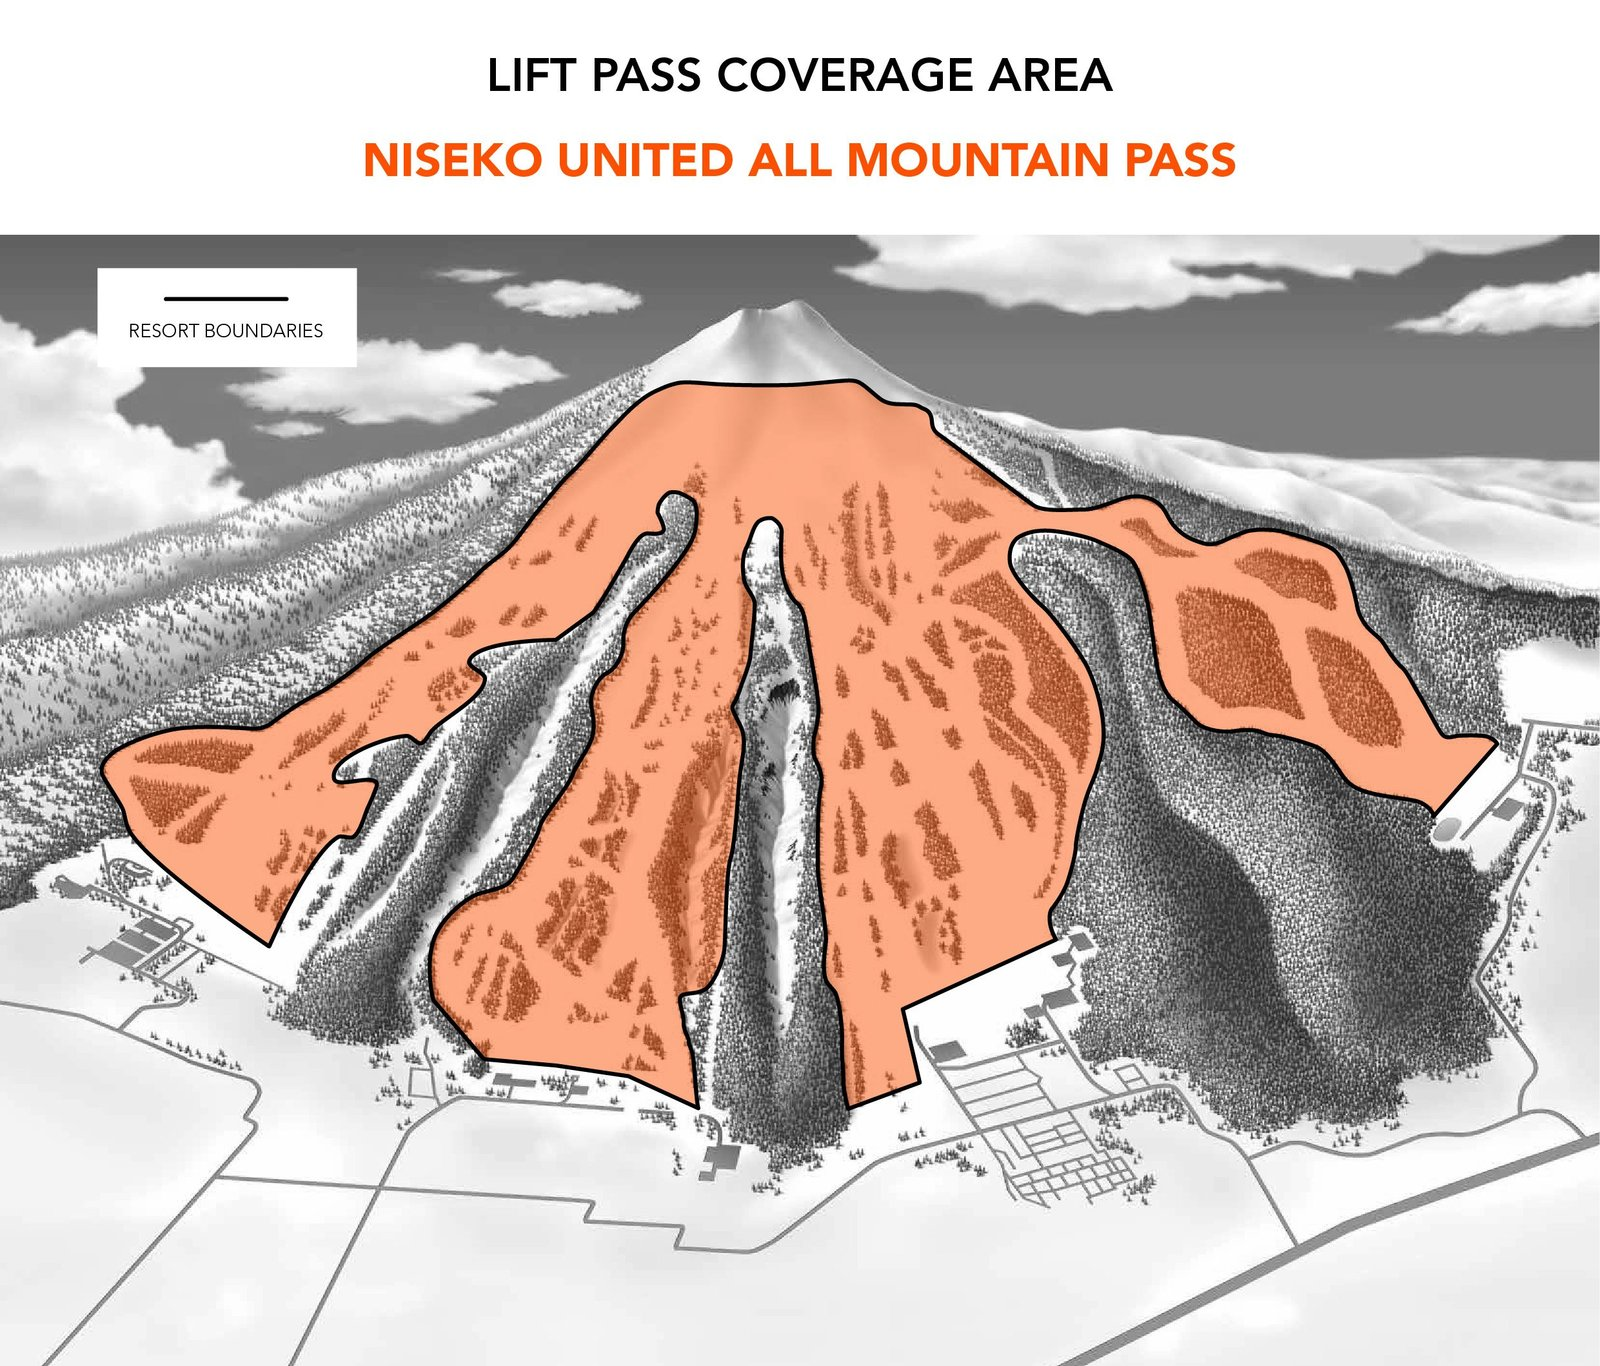 the area of the niseko united all mountain lift pass.